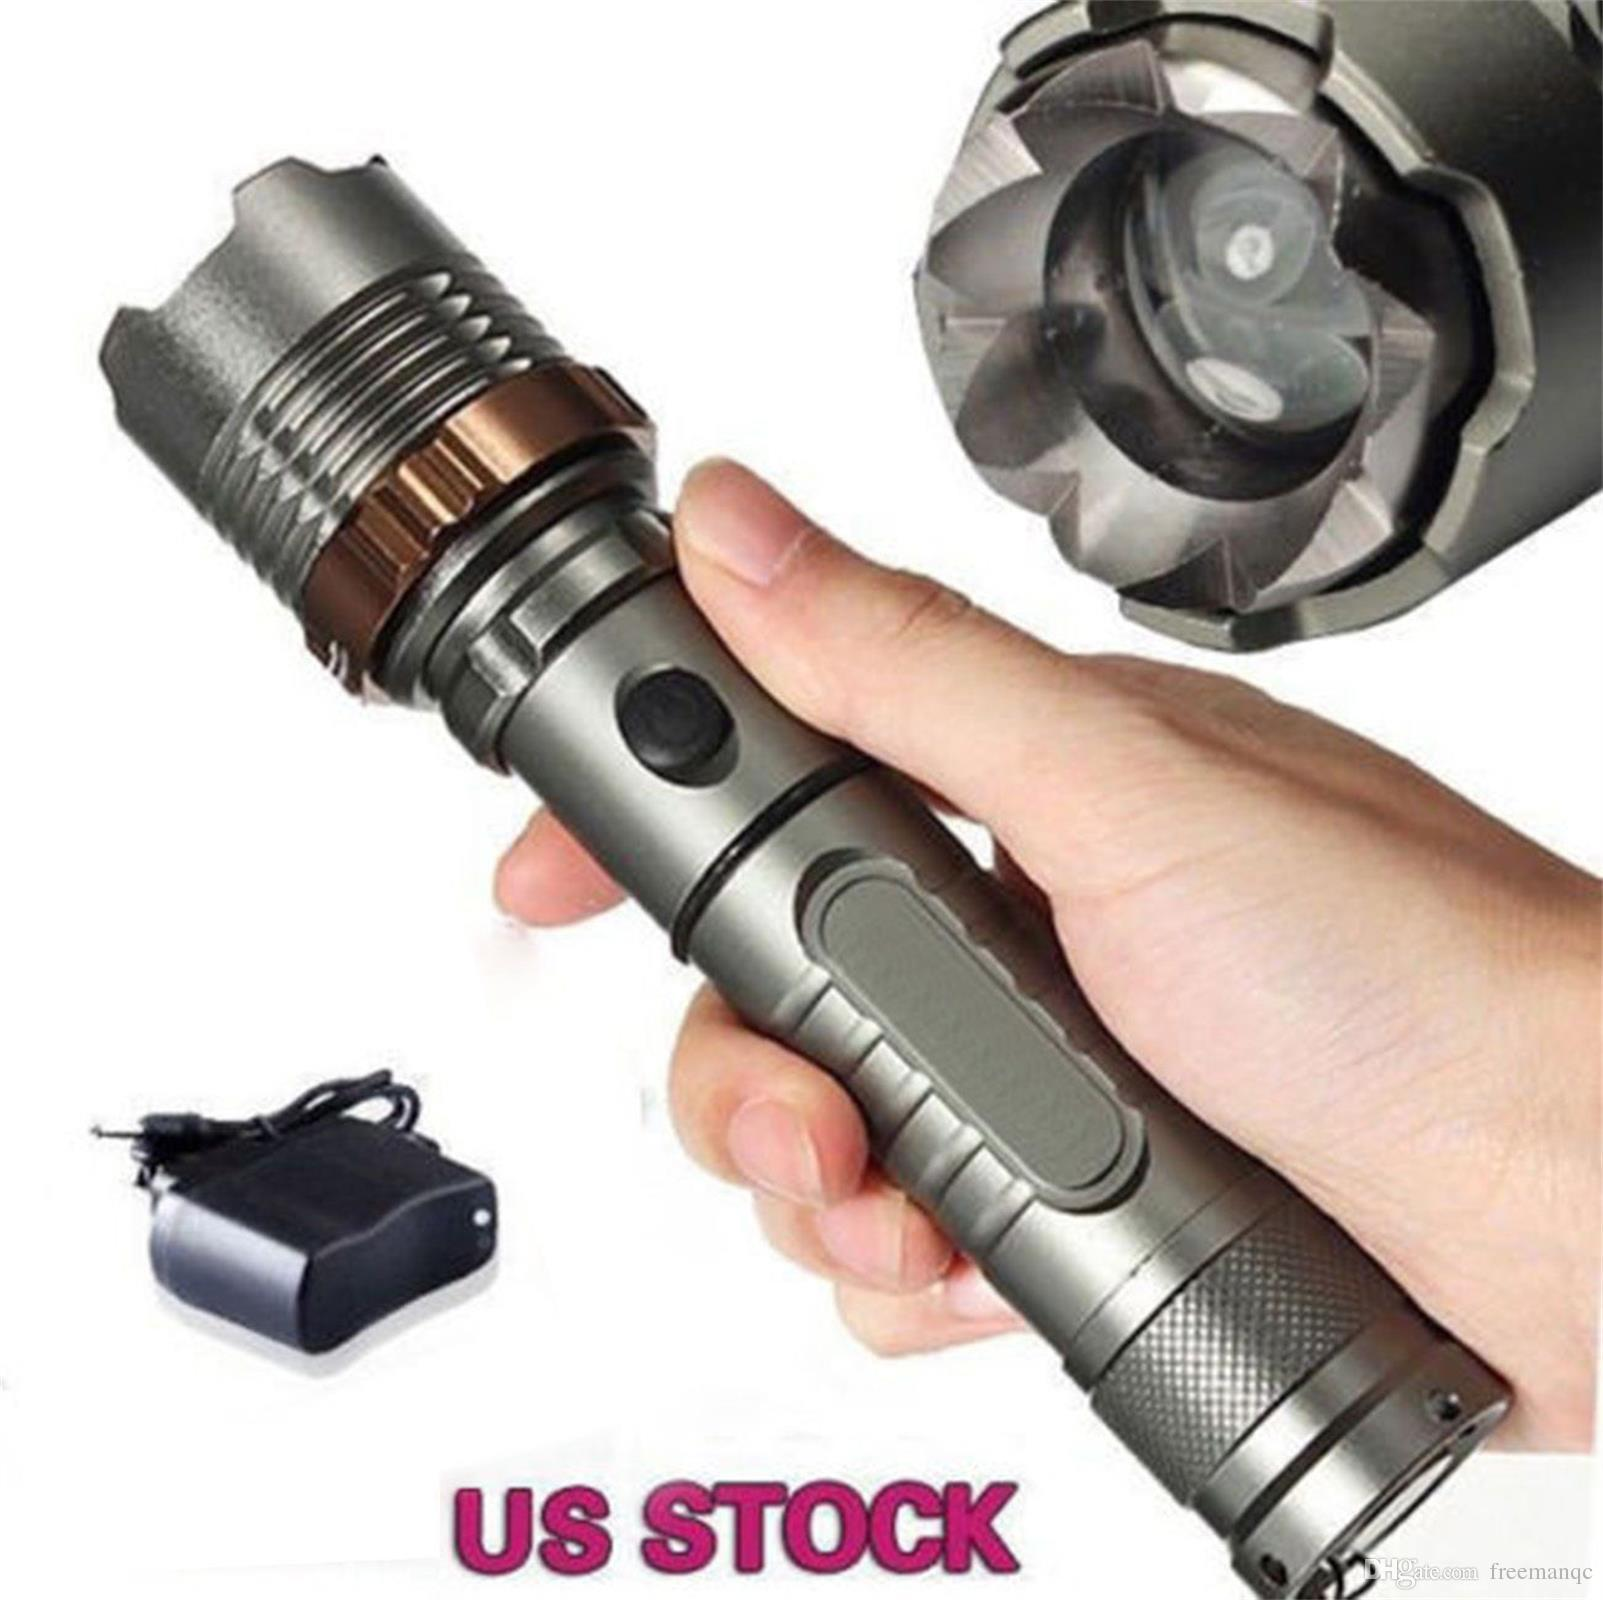 3800LM Cree XML T6 Tactical LED Flashlight Rechargeable Torch + 18650 Battery + Direct Charger